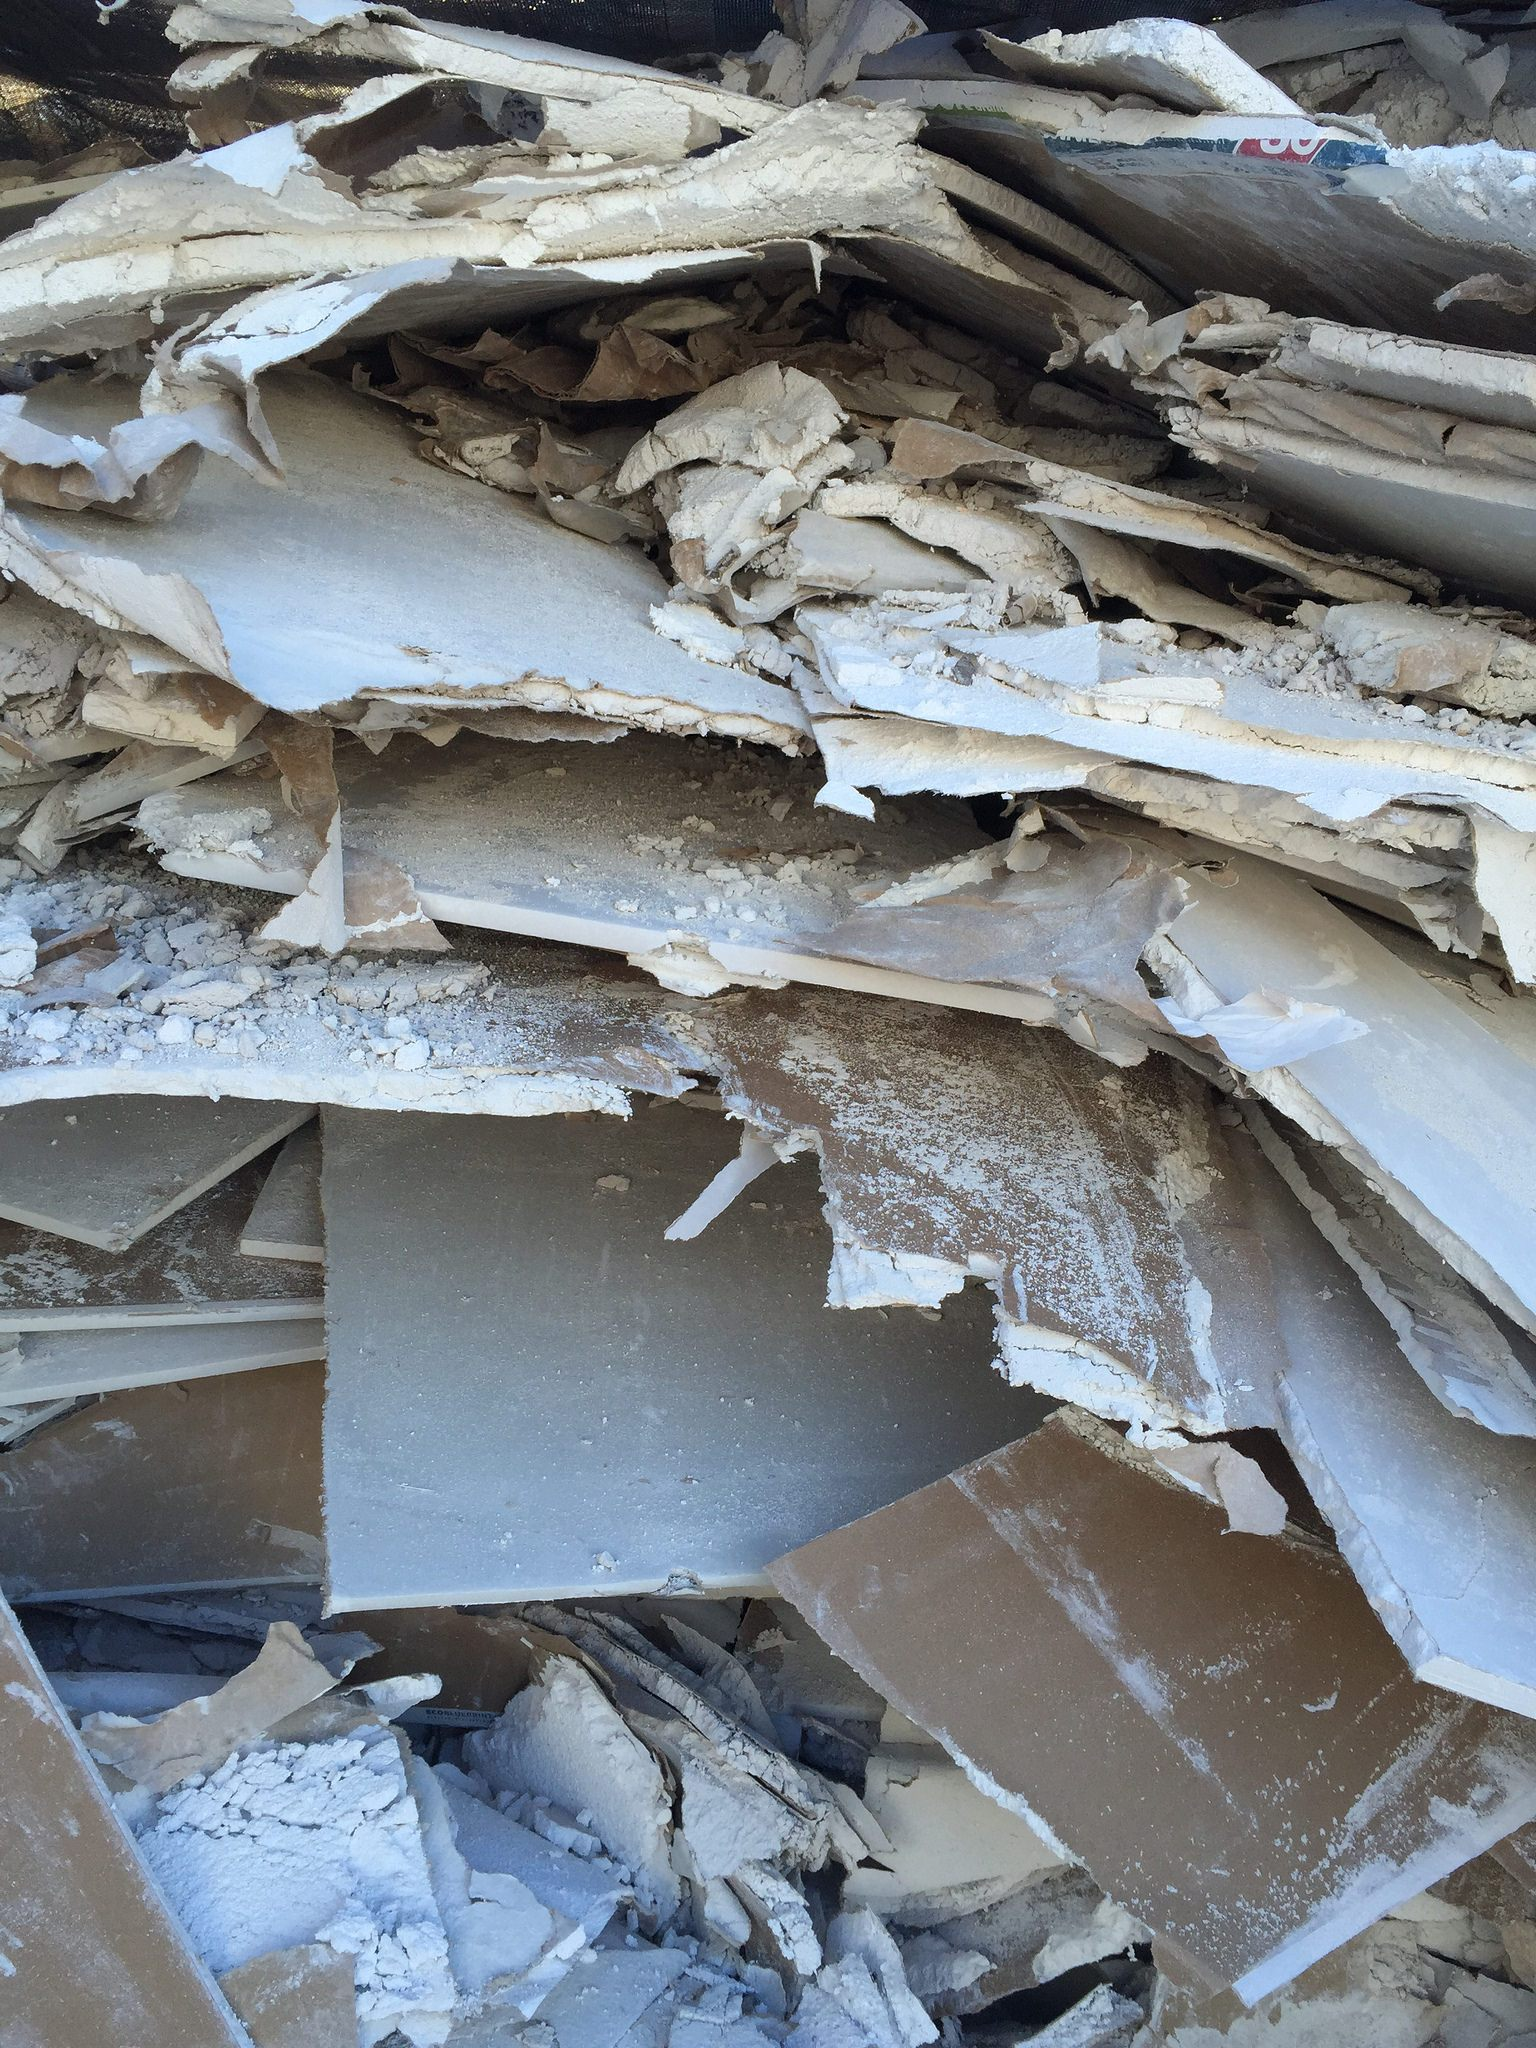 Plant rejects or clean demolition wallboard can be used